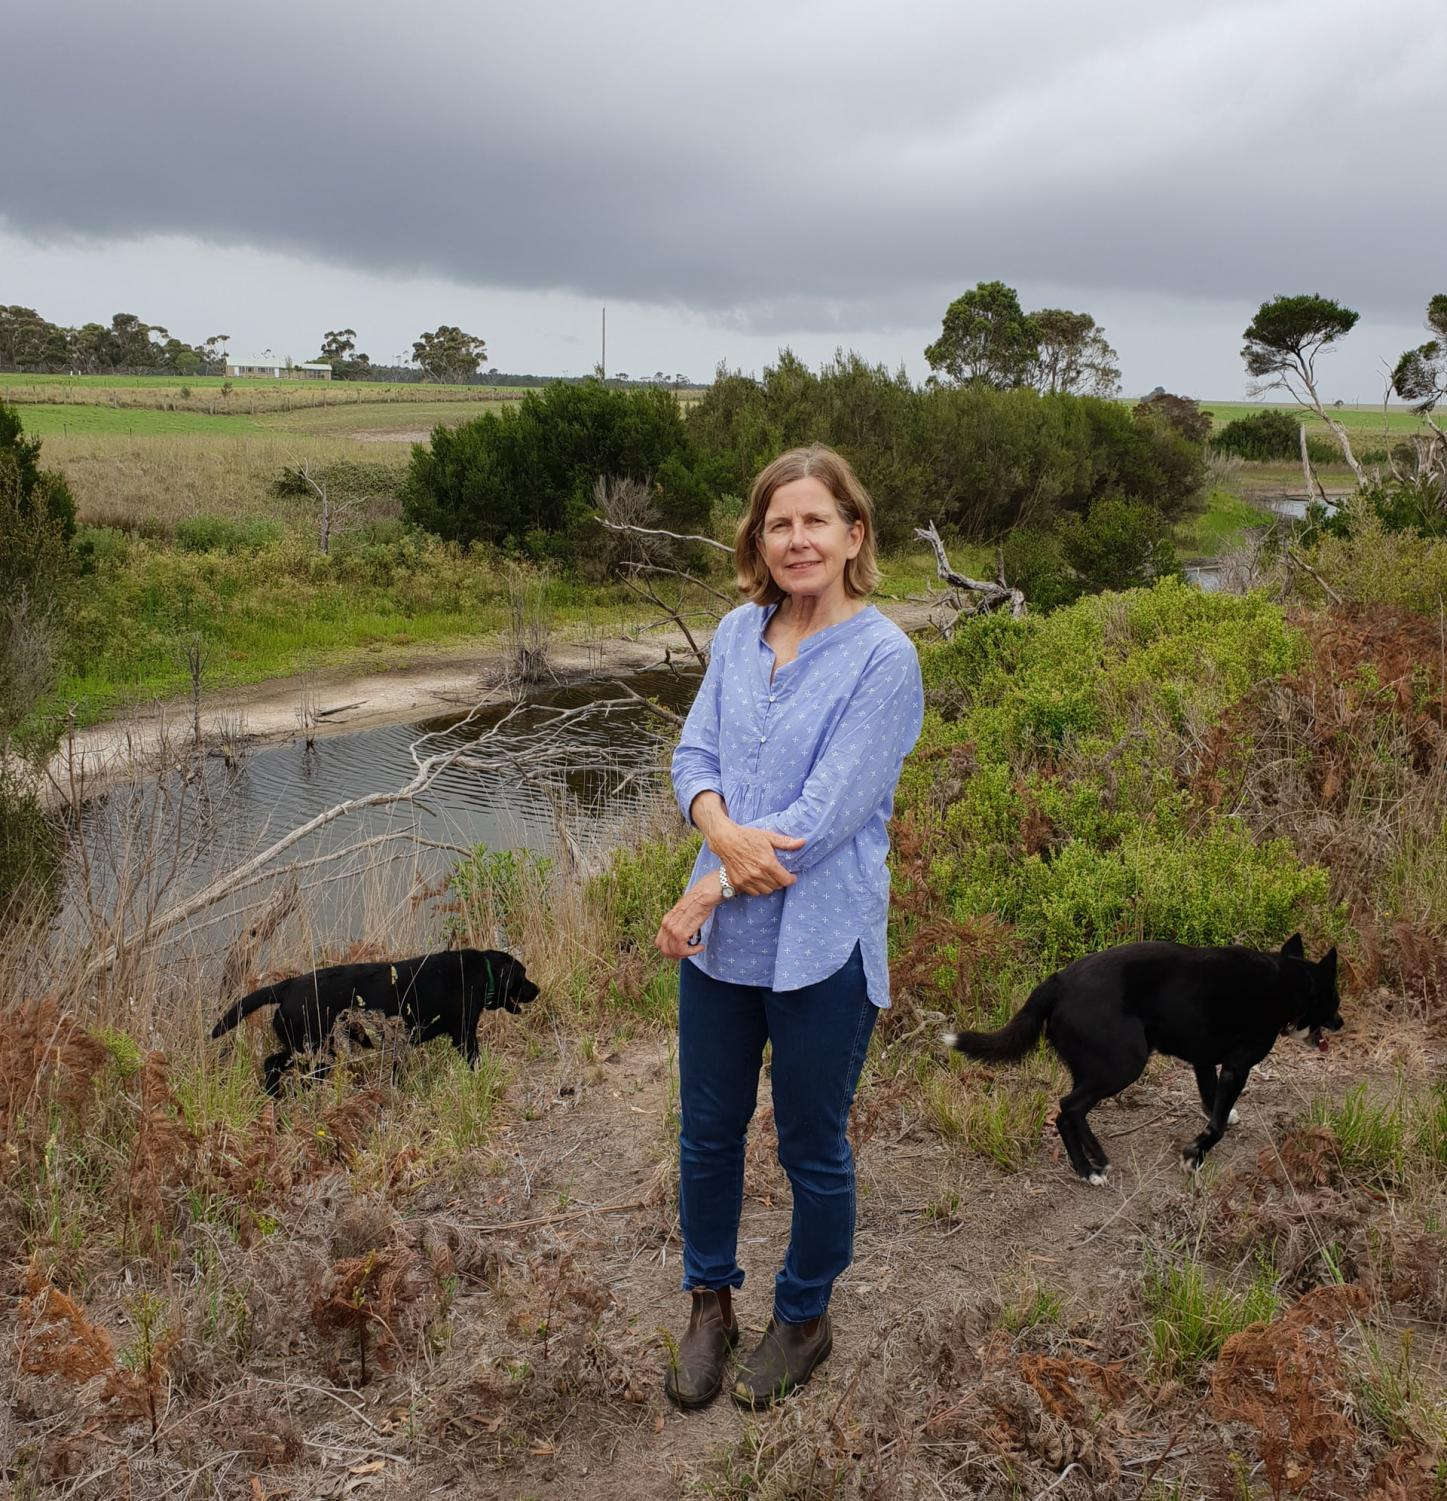 Elizabeth Balderstone stands next to Warrigal Creek on her farm in Victoria – the site of an 1843 massacre. Gunaikurnai people continue to visit the land to pay their respects. Photograph: Ciaran O'Mahony/The Guardian